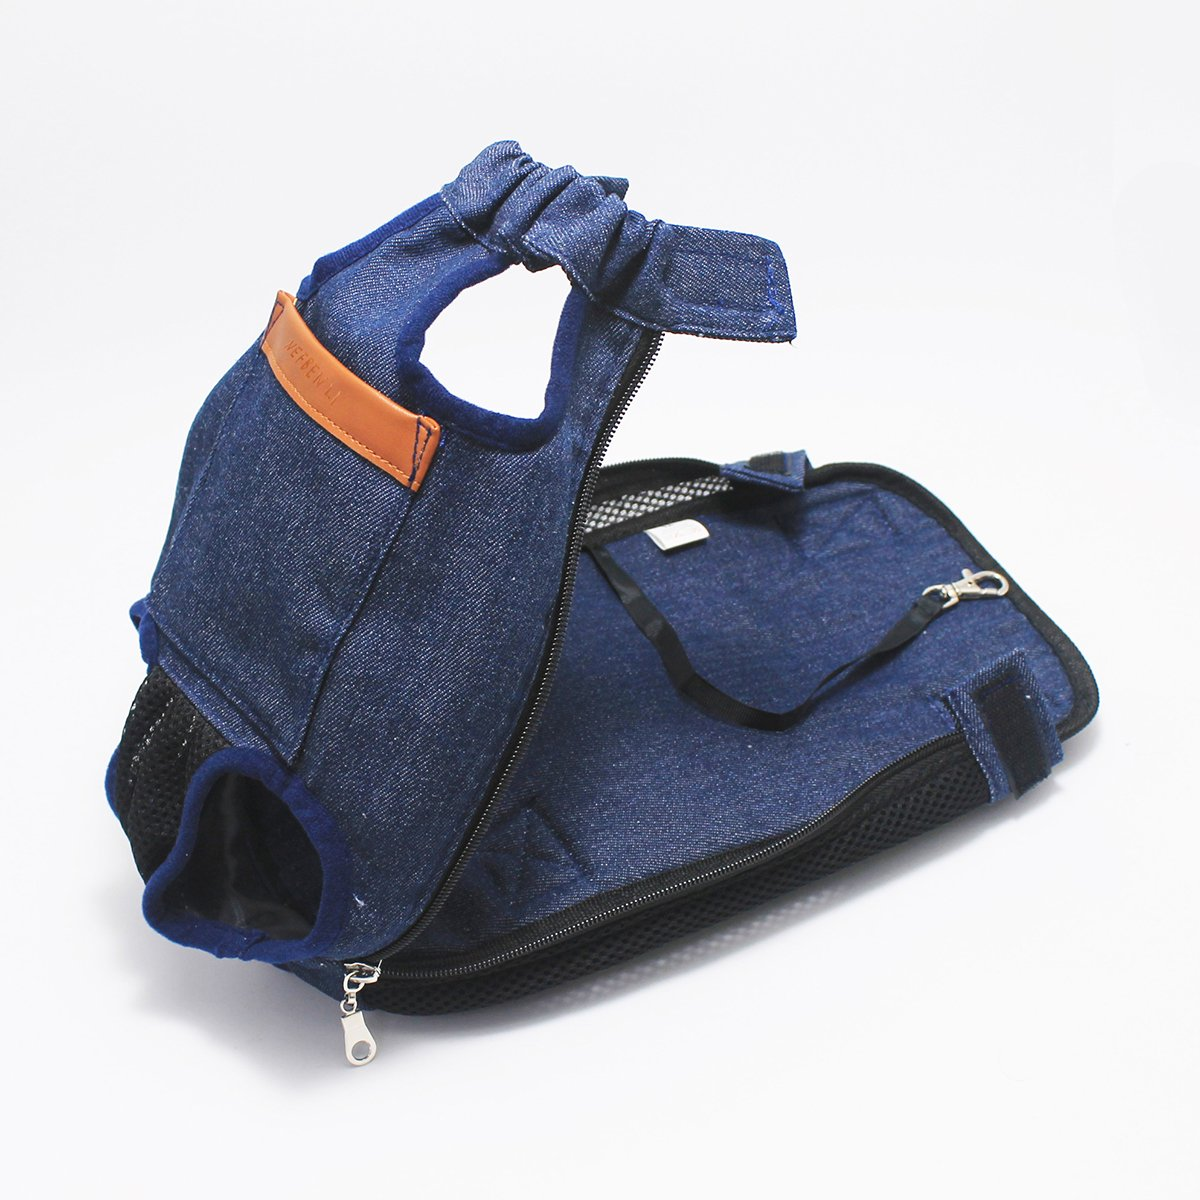 NEFBENLI Denim Blue Front Kangaroo Pouch Dog Carrier,Wide Straps Shoulder Pads,Adjustable Legs out Pet Backpack Carrier Walking,Travel,Hiking,Camping (X-Large) by NEFBENLI (Image #4)